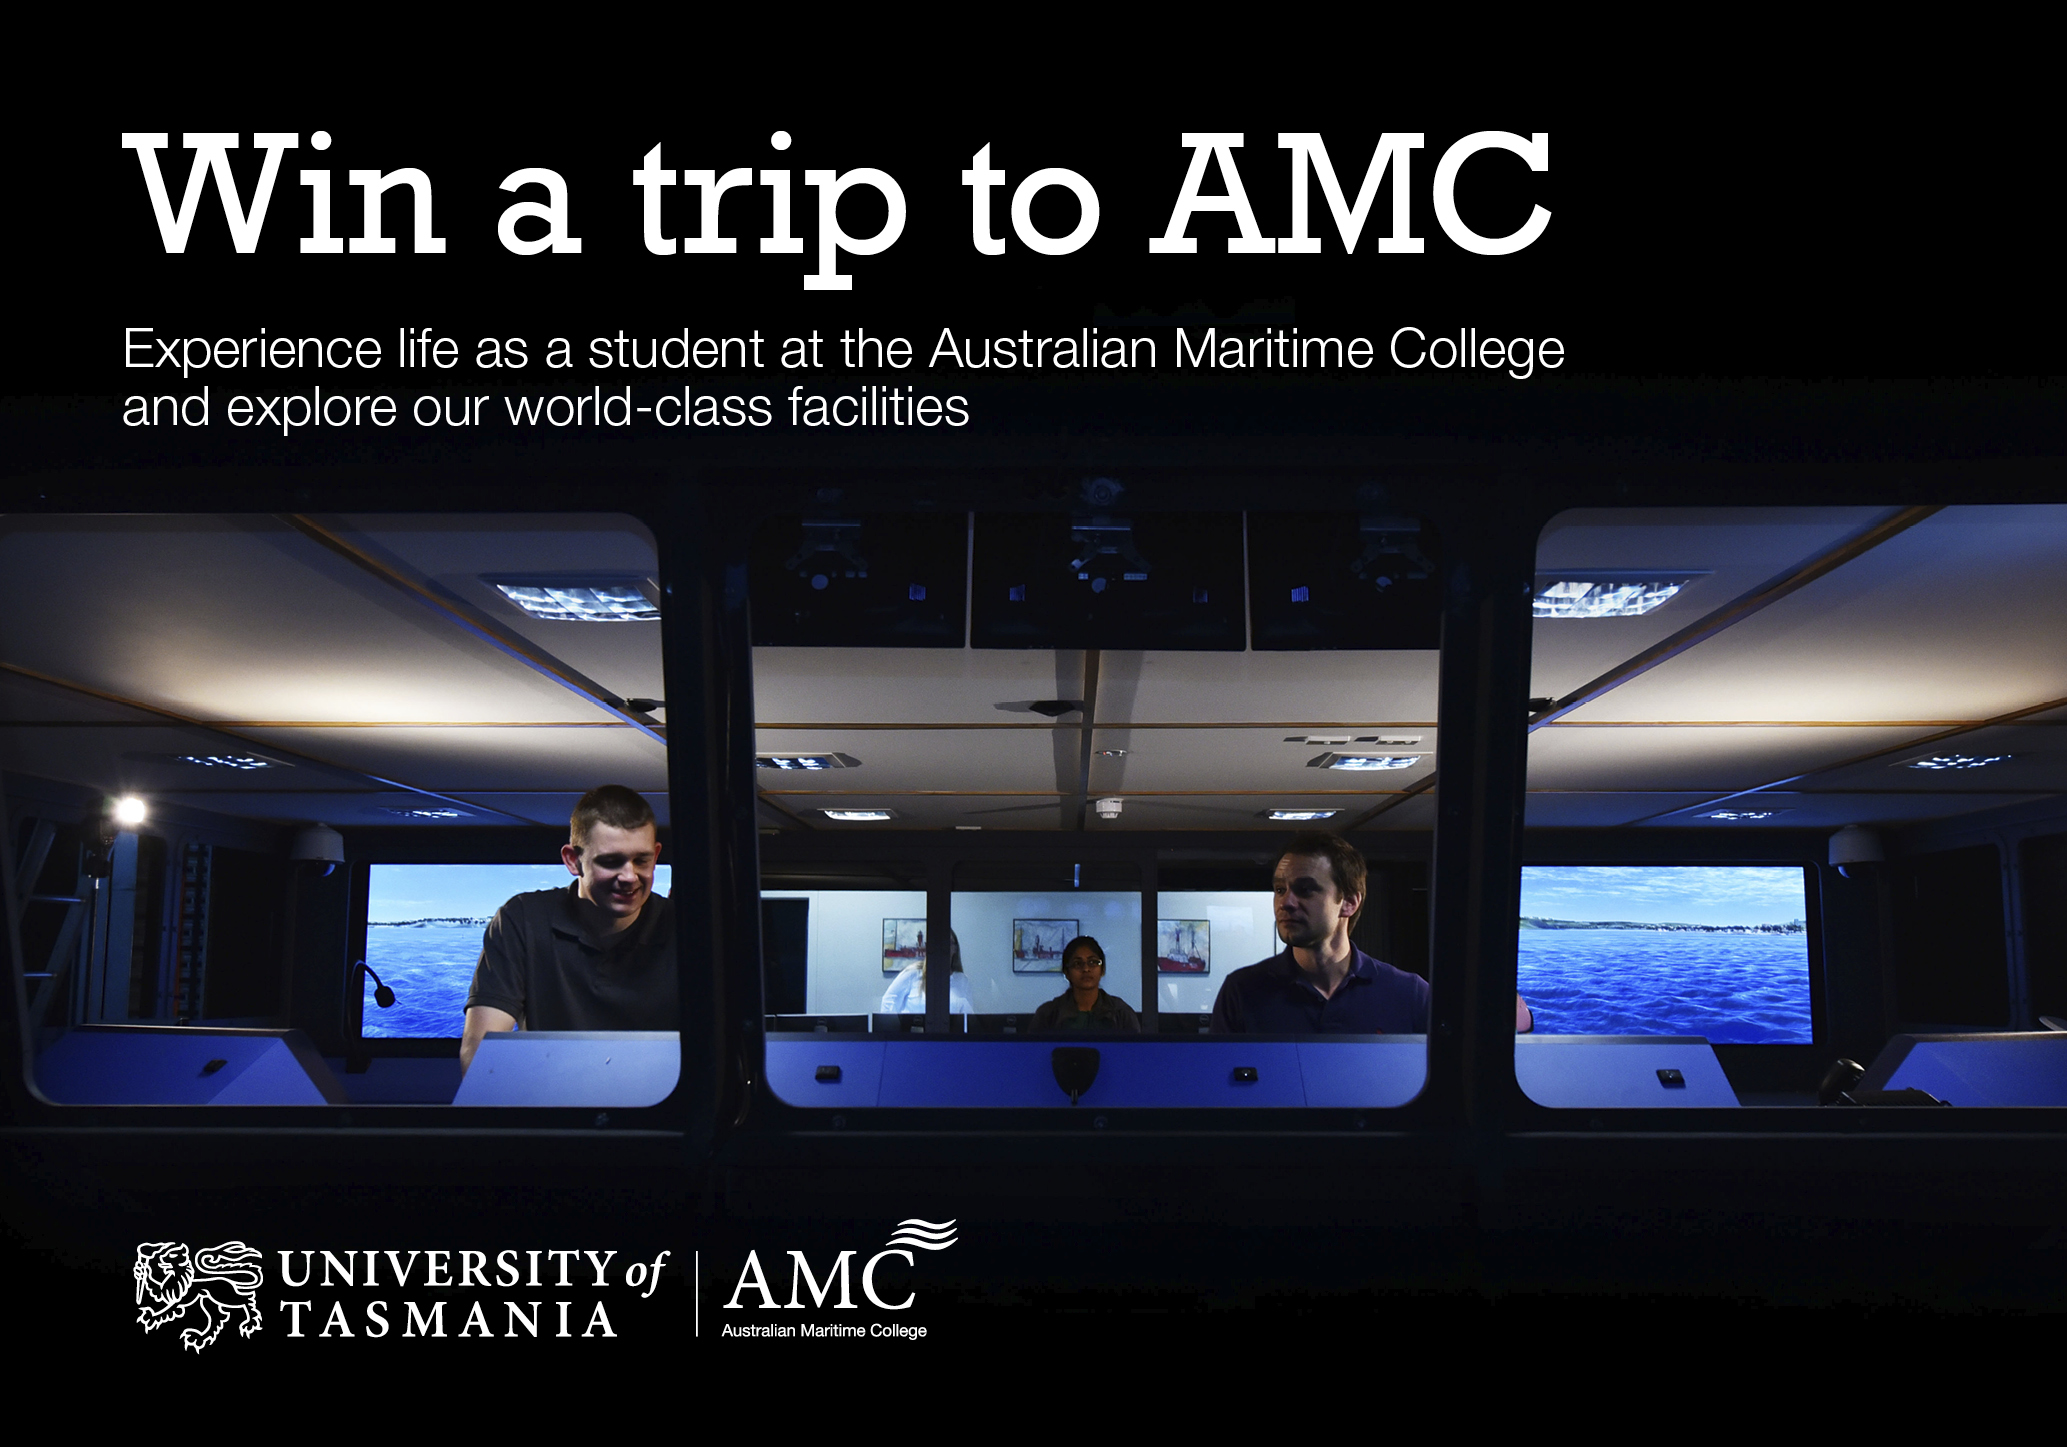 Win a trip to AMC. Experience life as a student at the Australian Maritime College and explore our world-class facilities